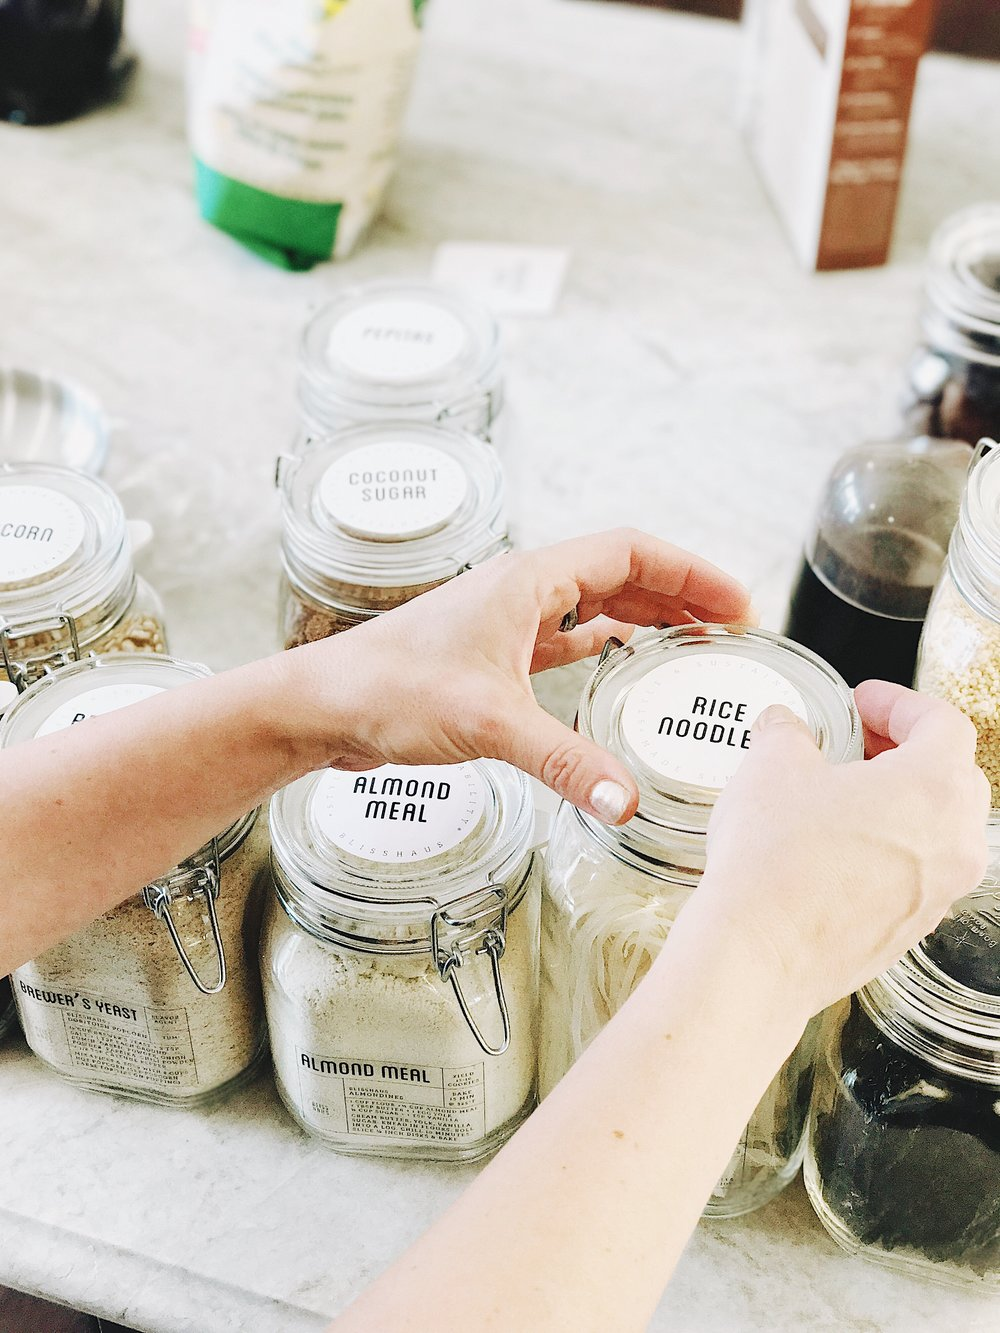 Beautiful labeled jars